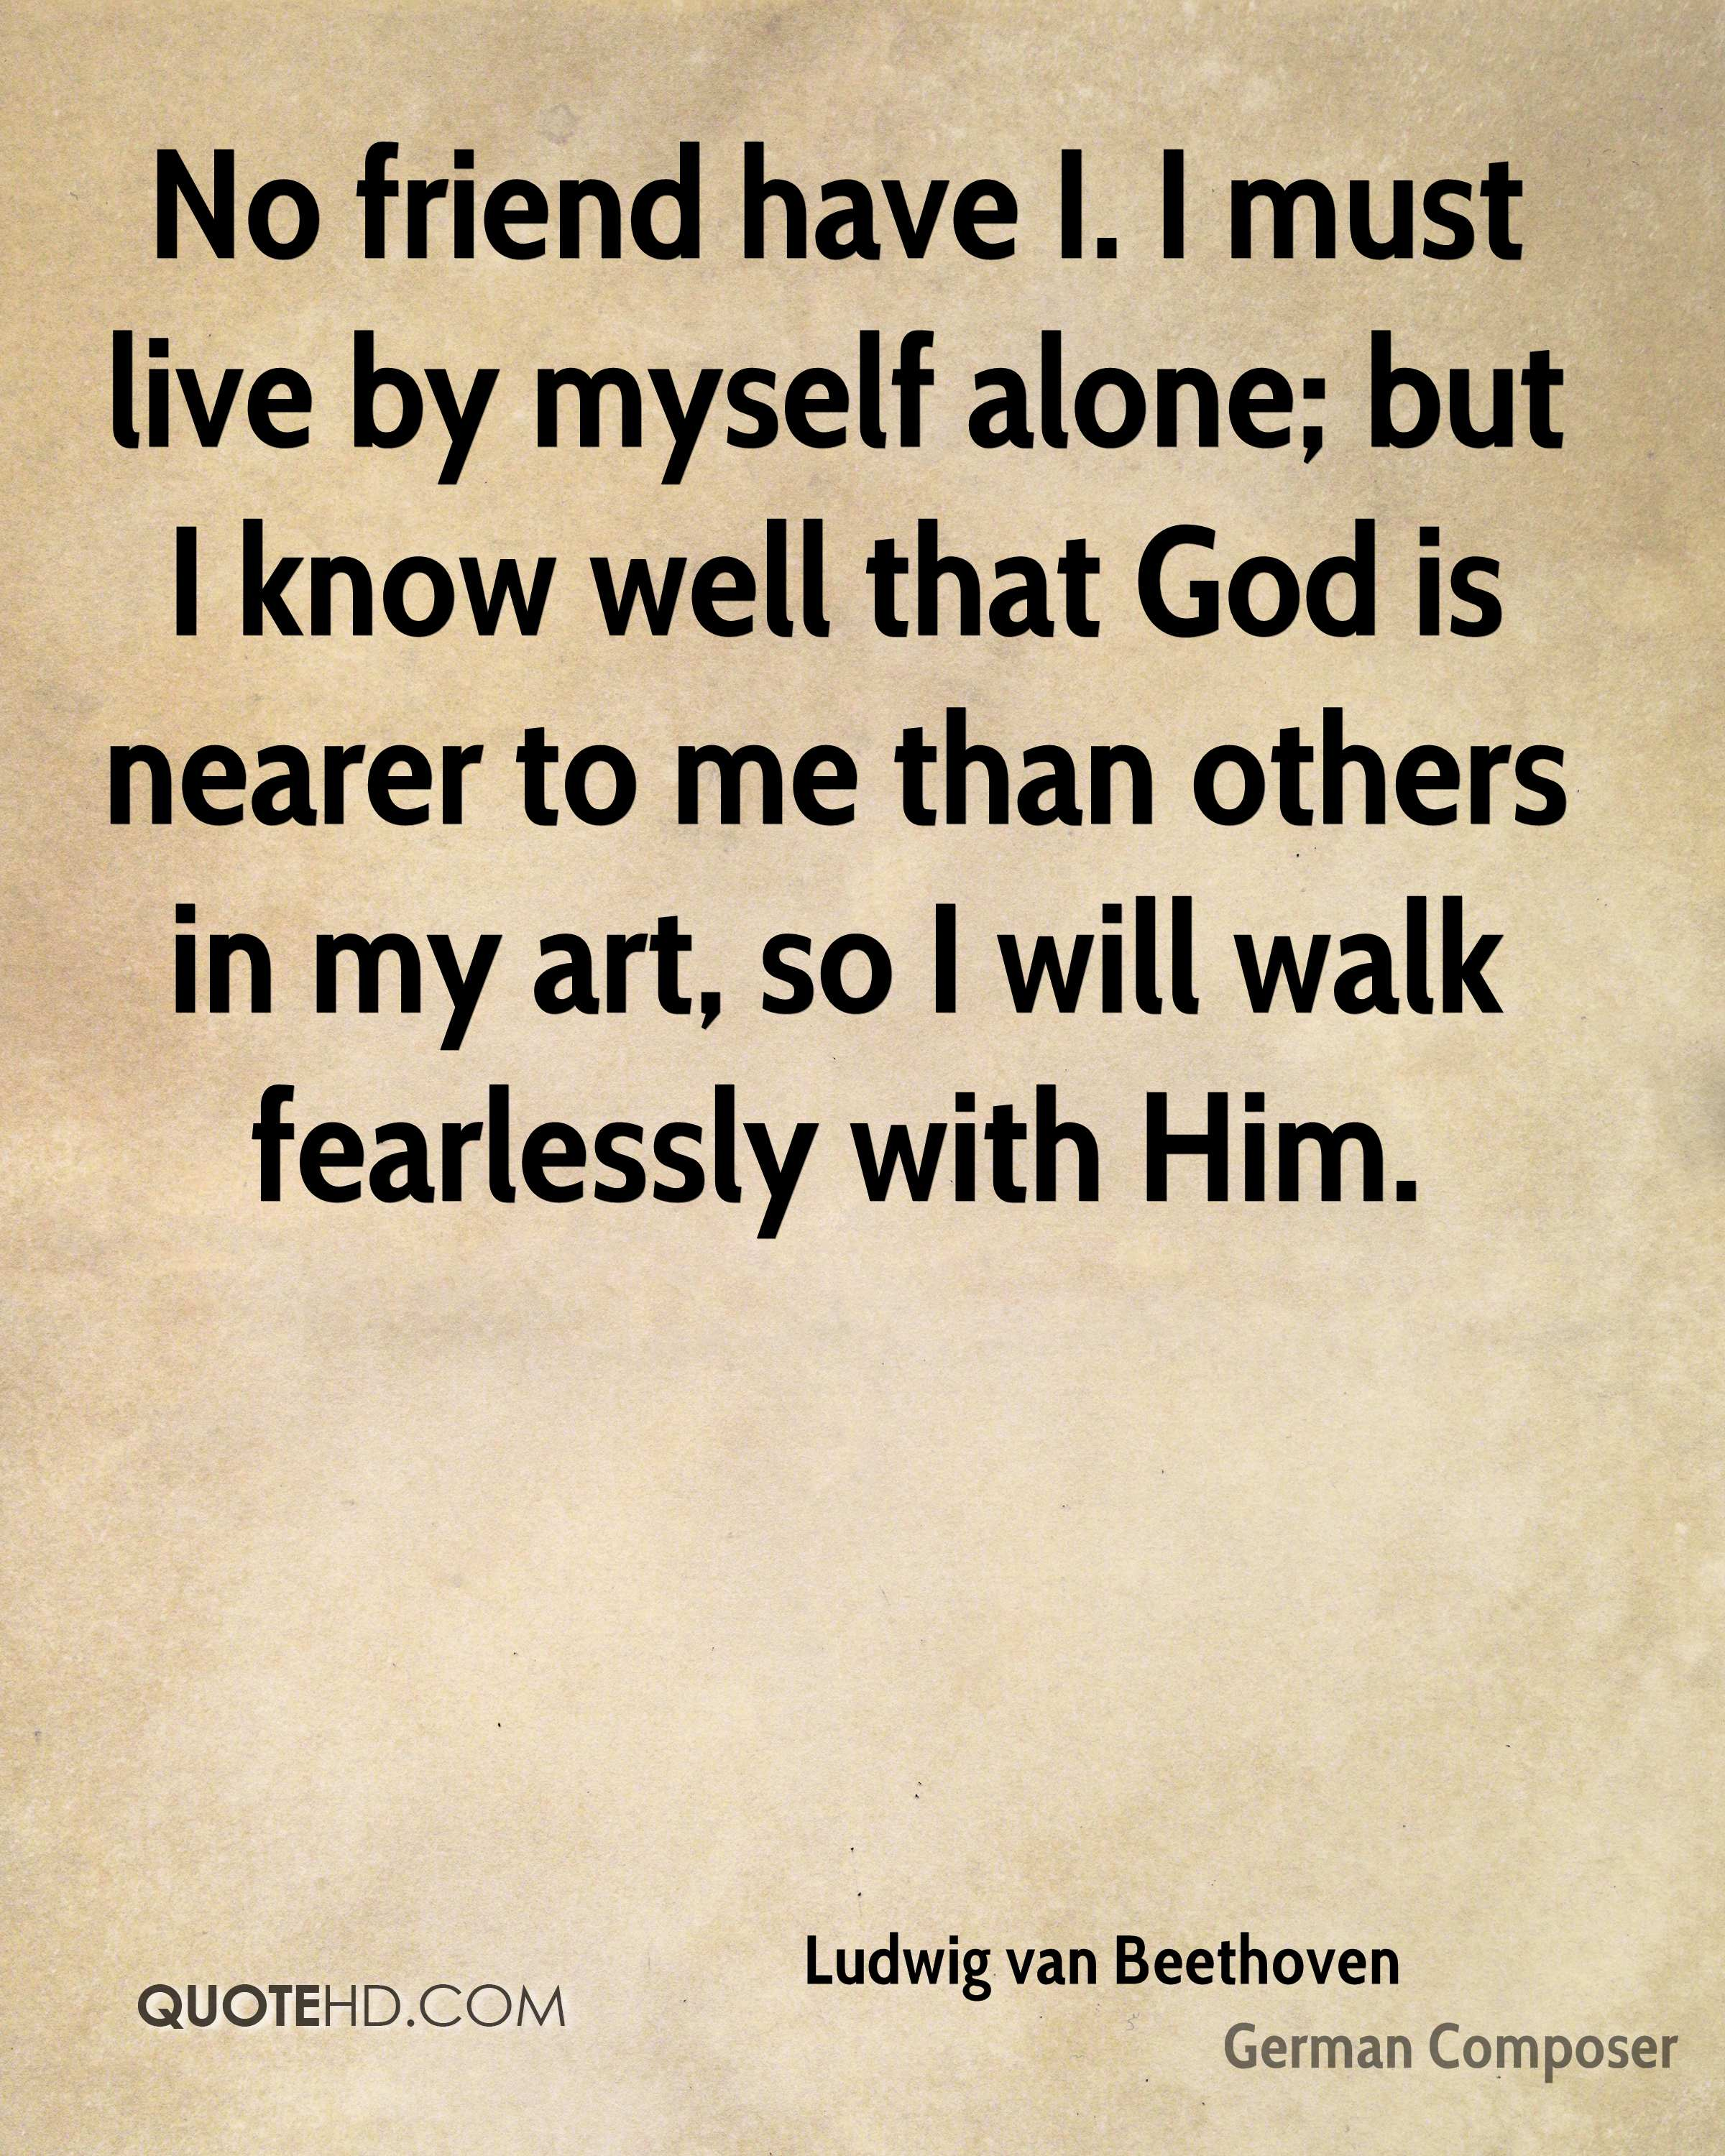 No friend have I. I must live by myself alone; but I know well that God is nearer to me than others in my art, so I will walk fearlessly with Him.